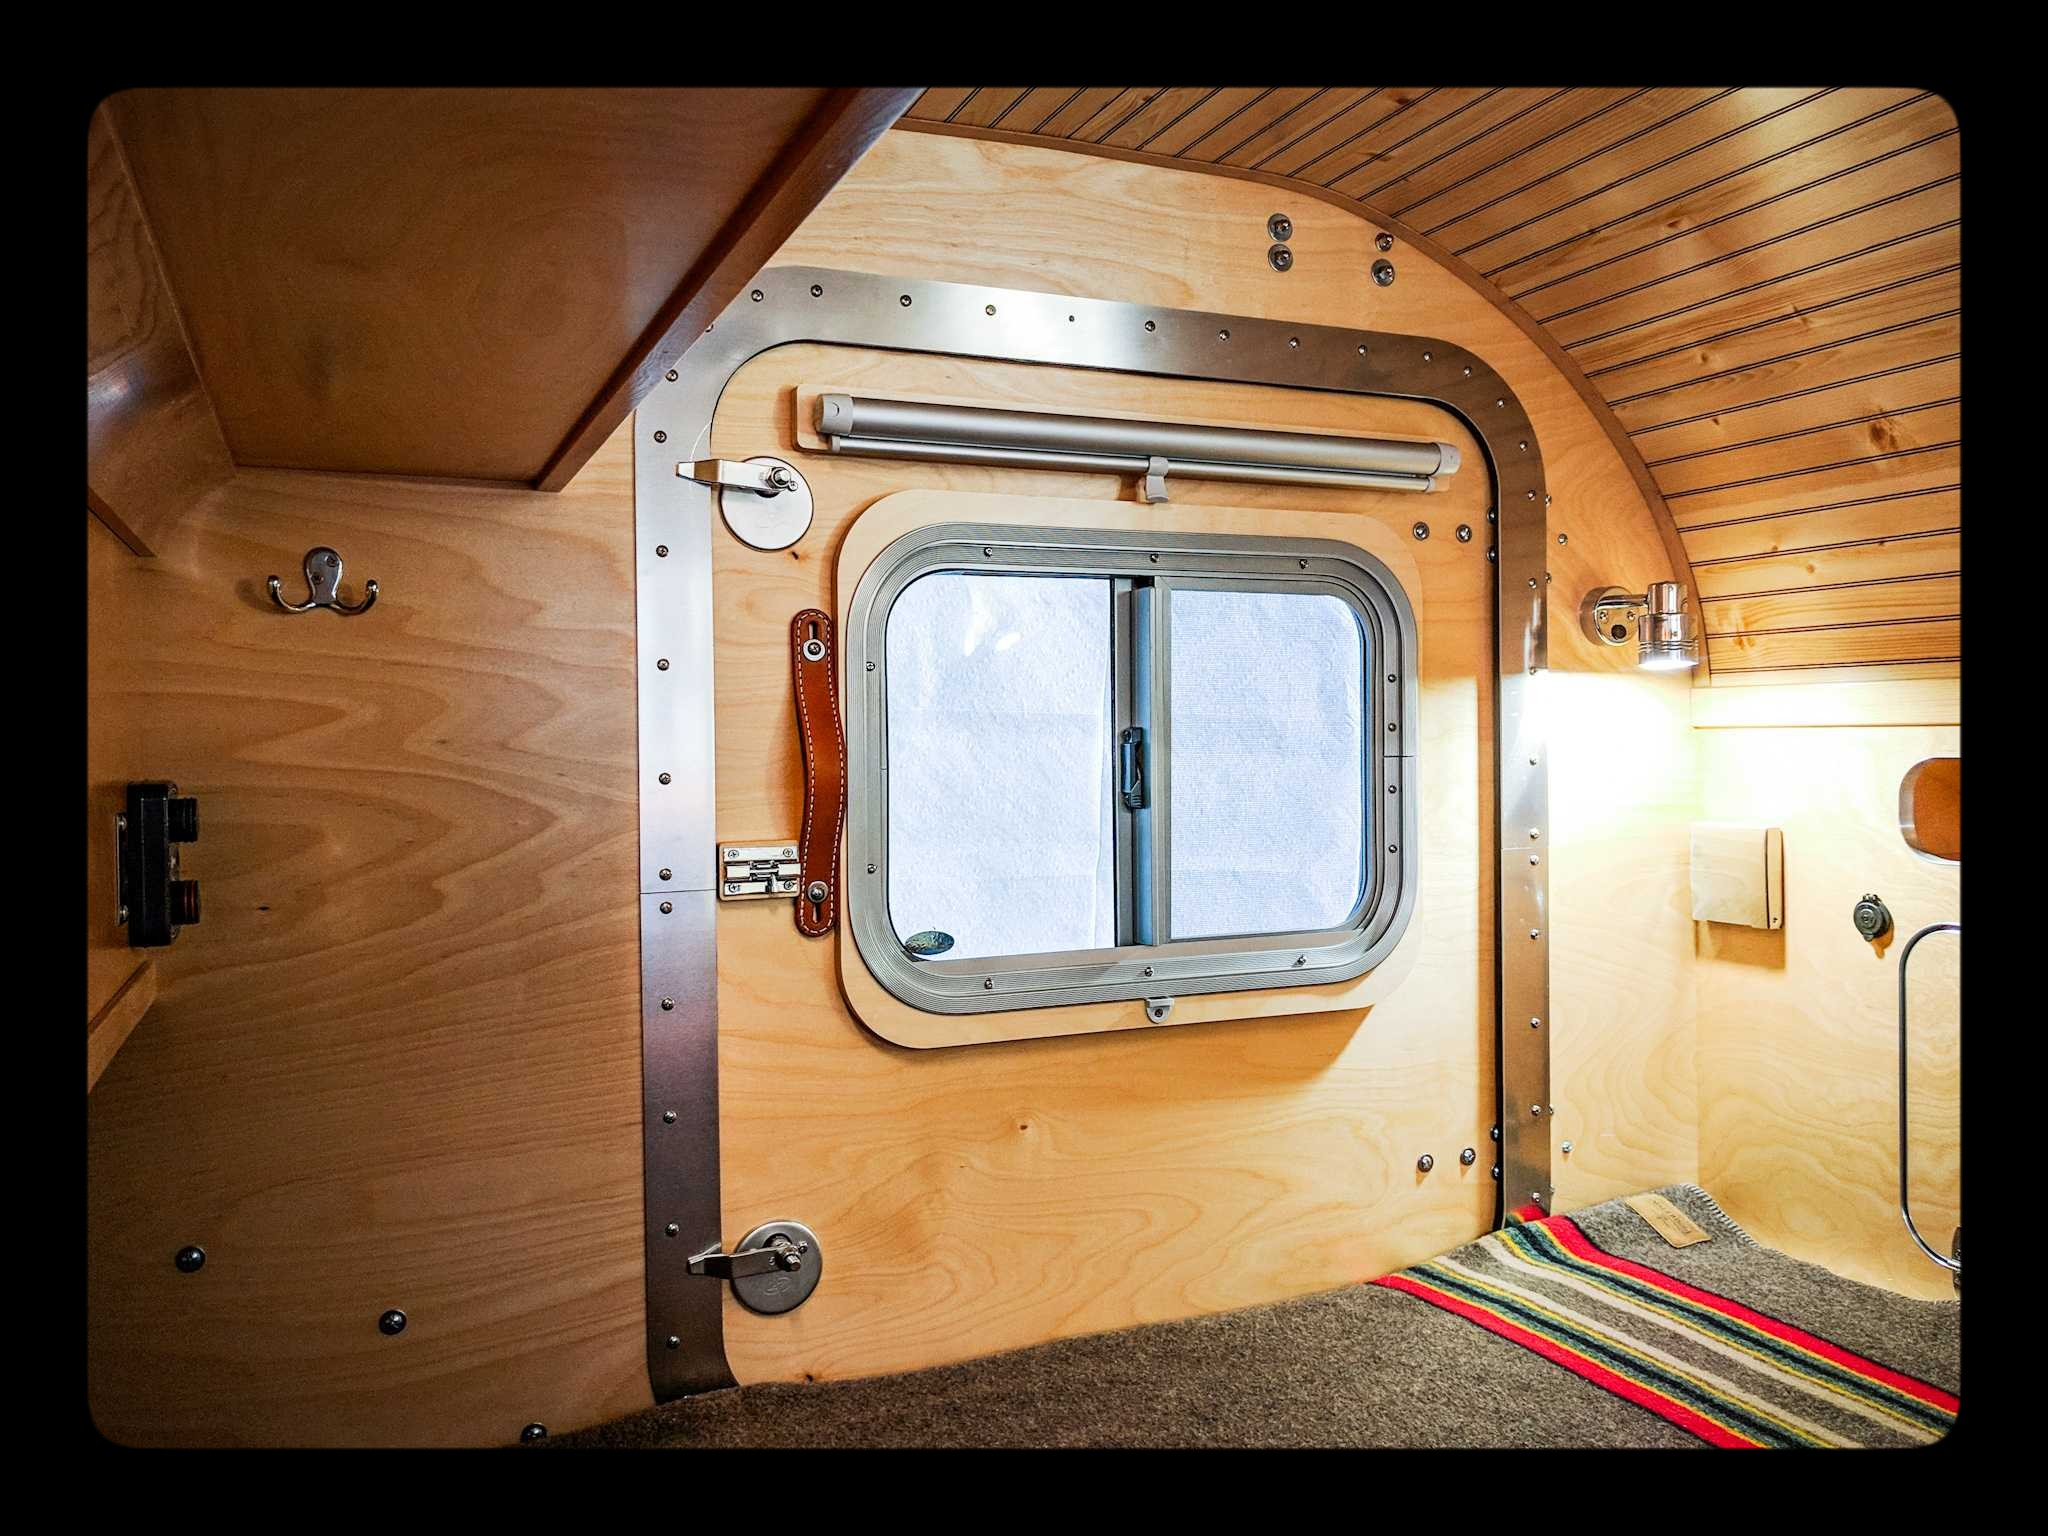 Exterior Trailer Images High Camp Trailers Compact Camping Teardrop Trailers